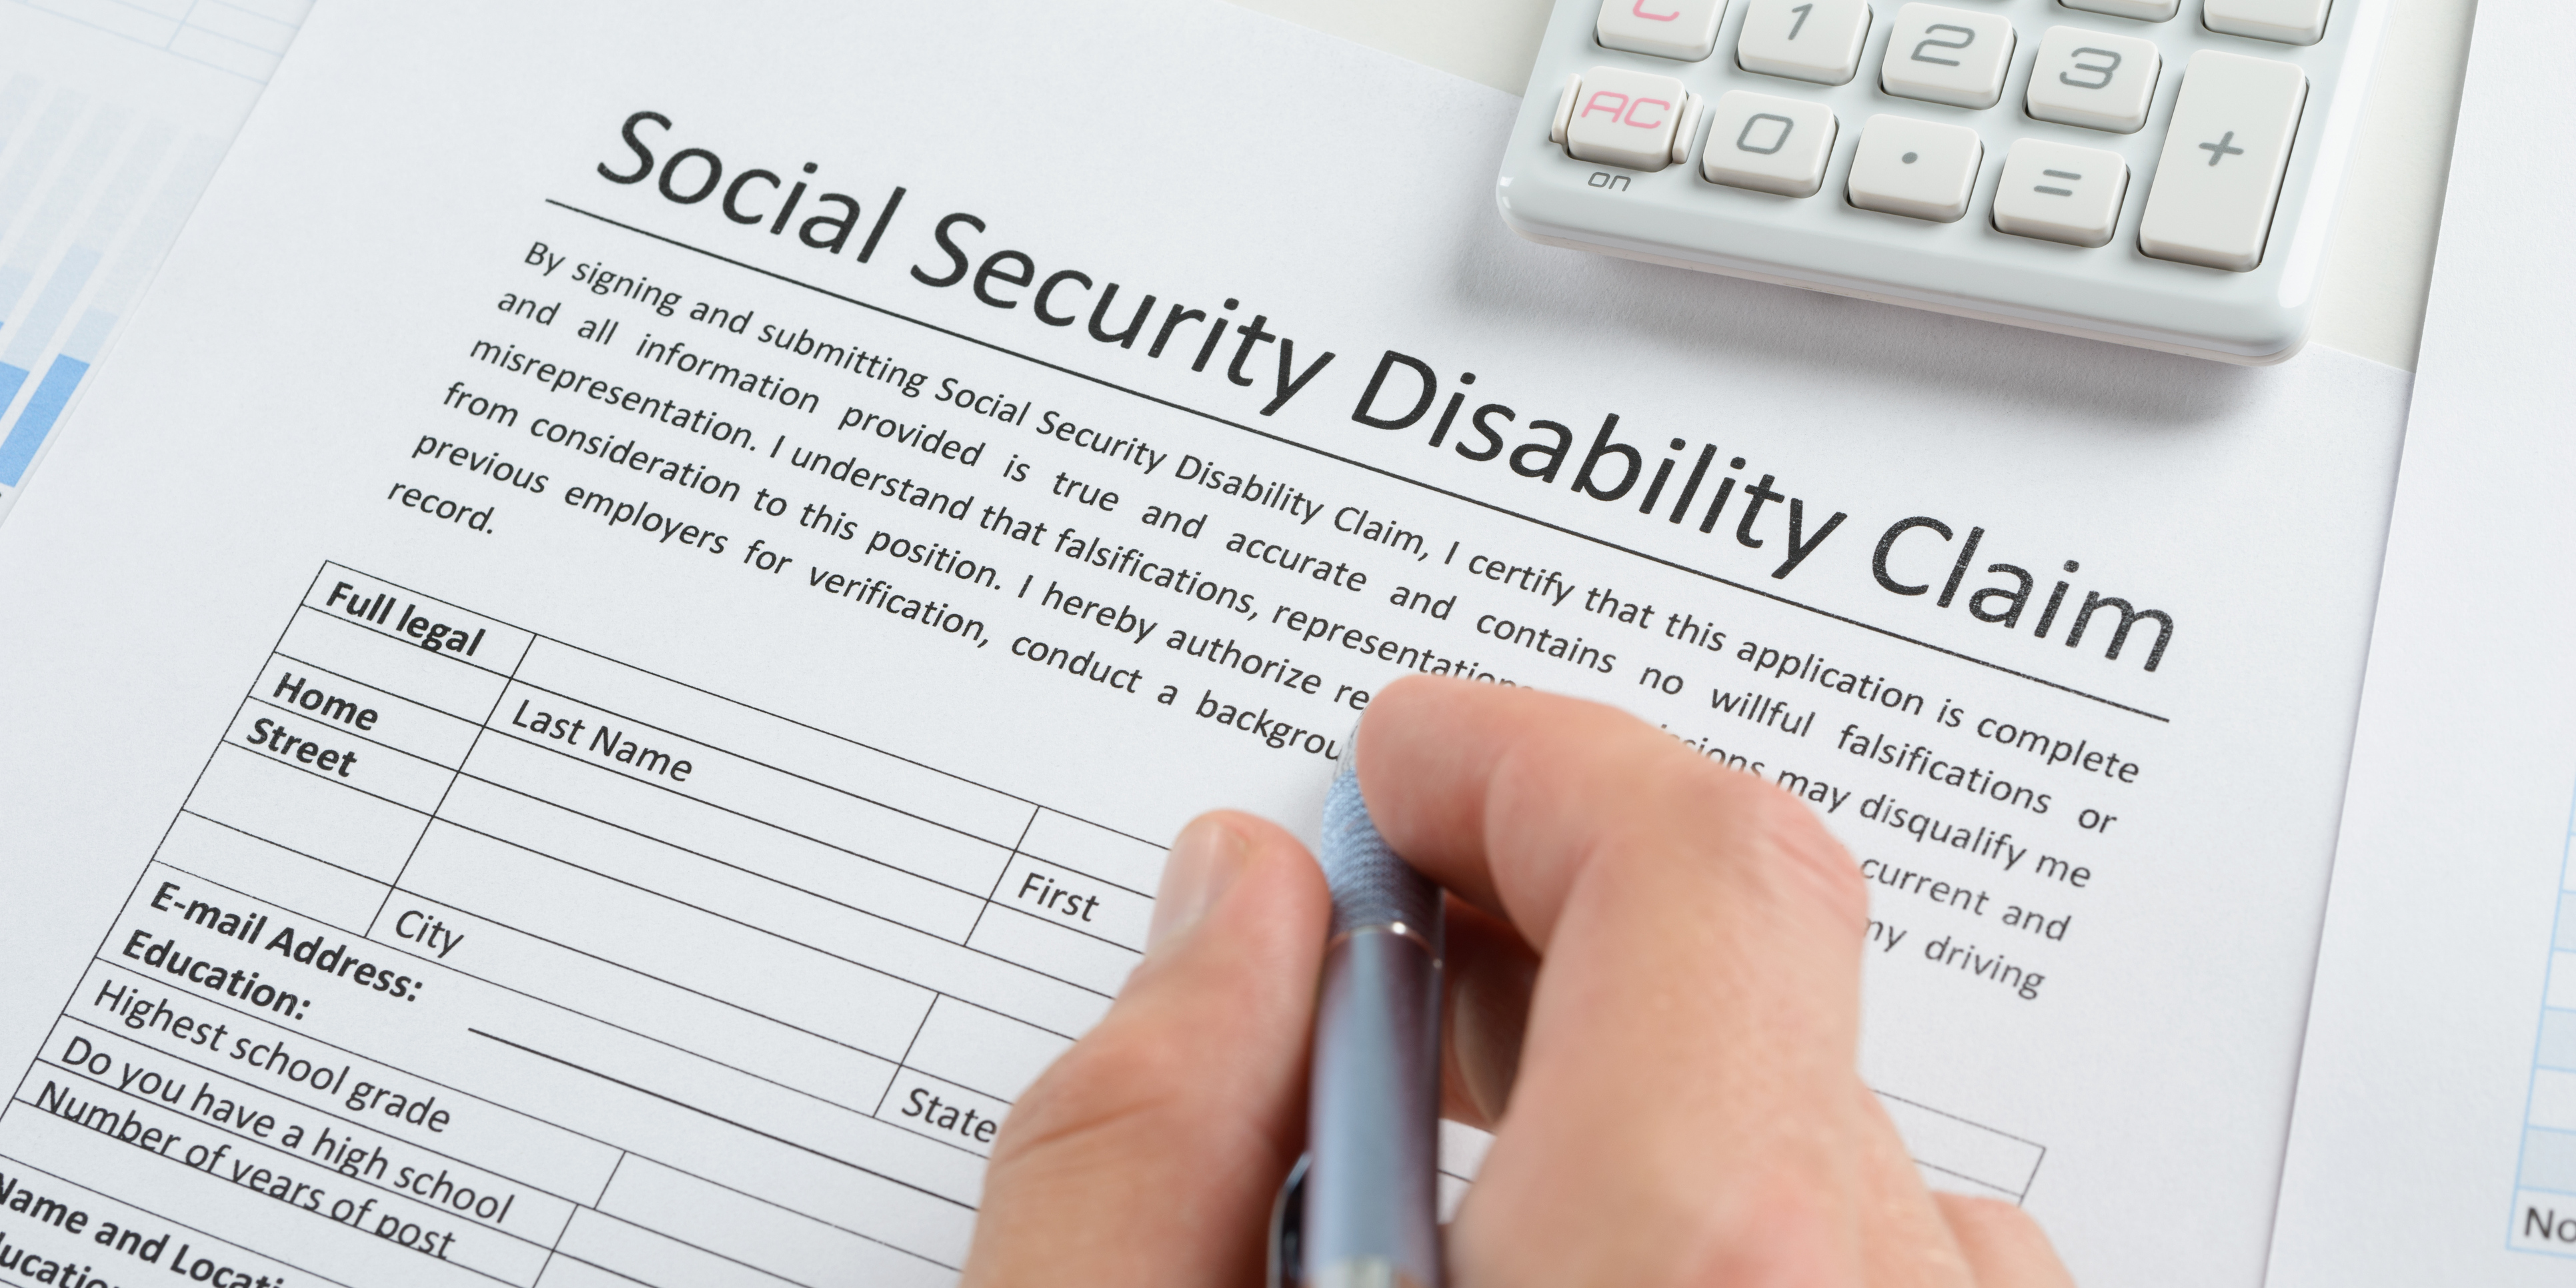 Getting The Letter About My Social Security Disability Application